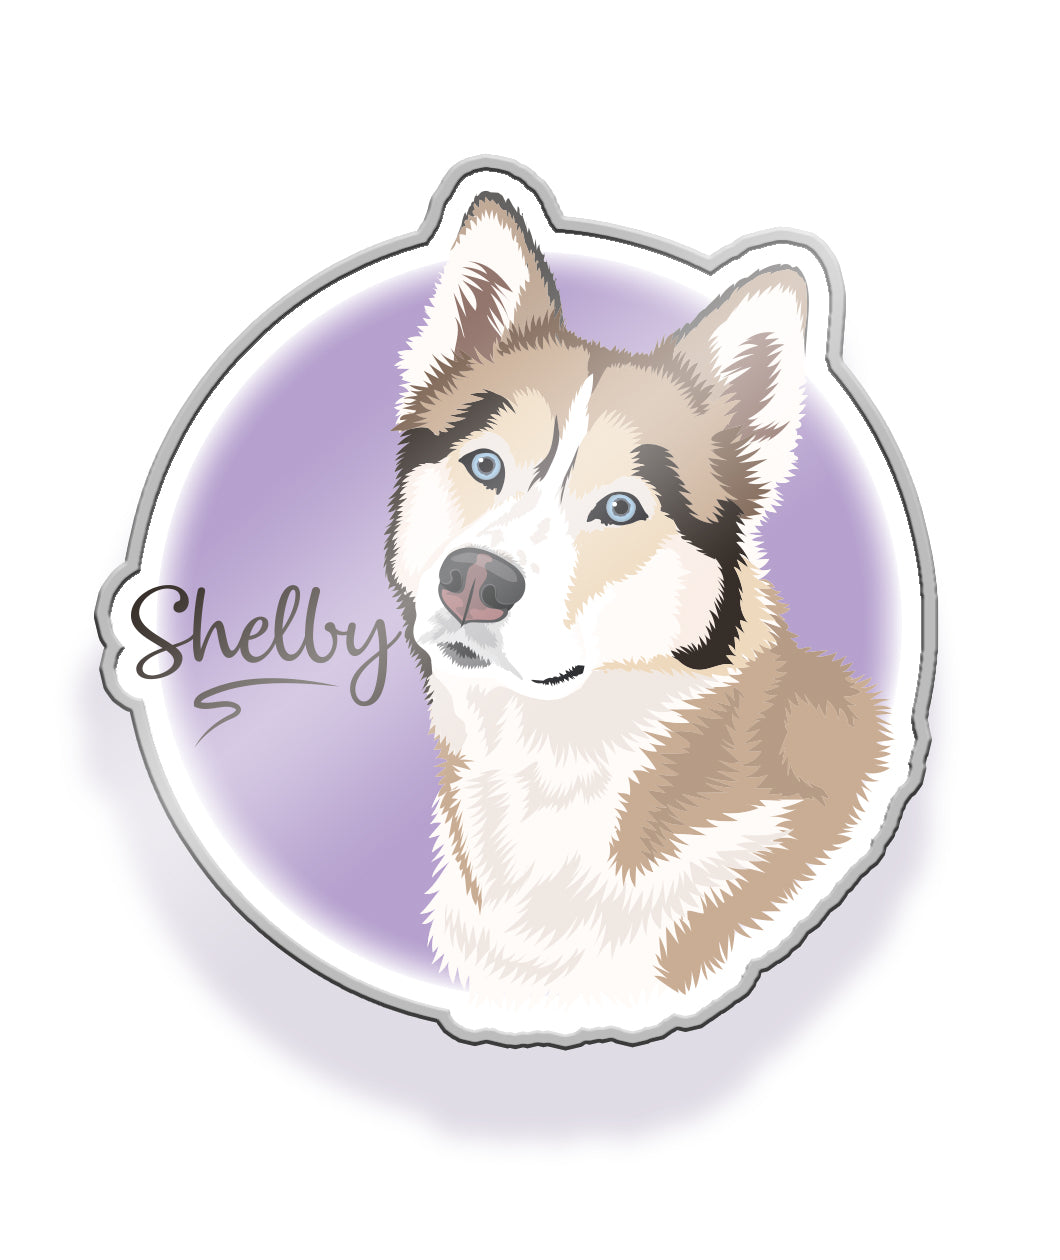 Shelby Enamel Pin